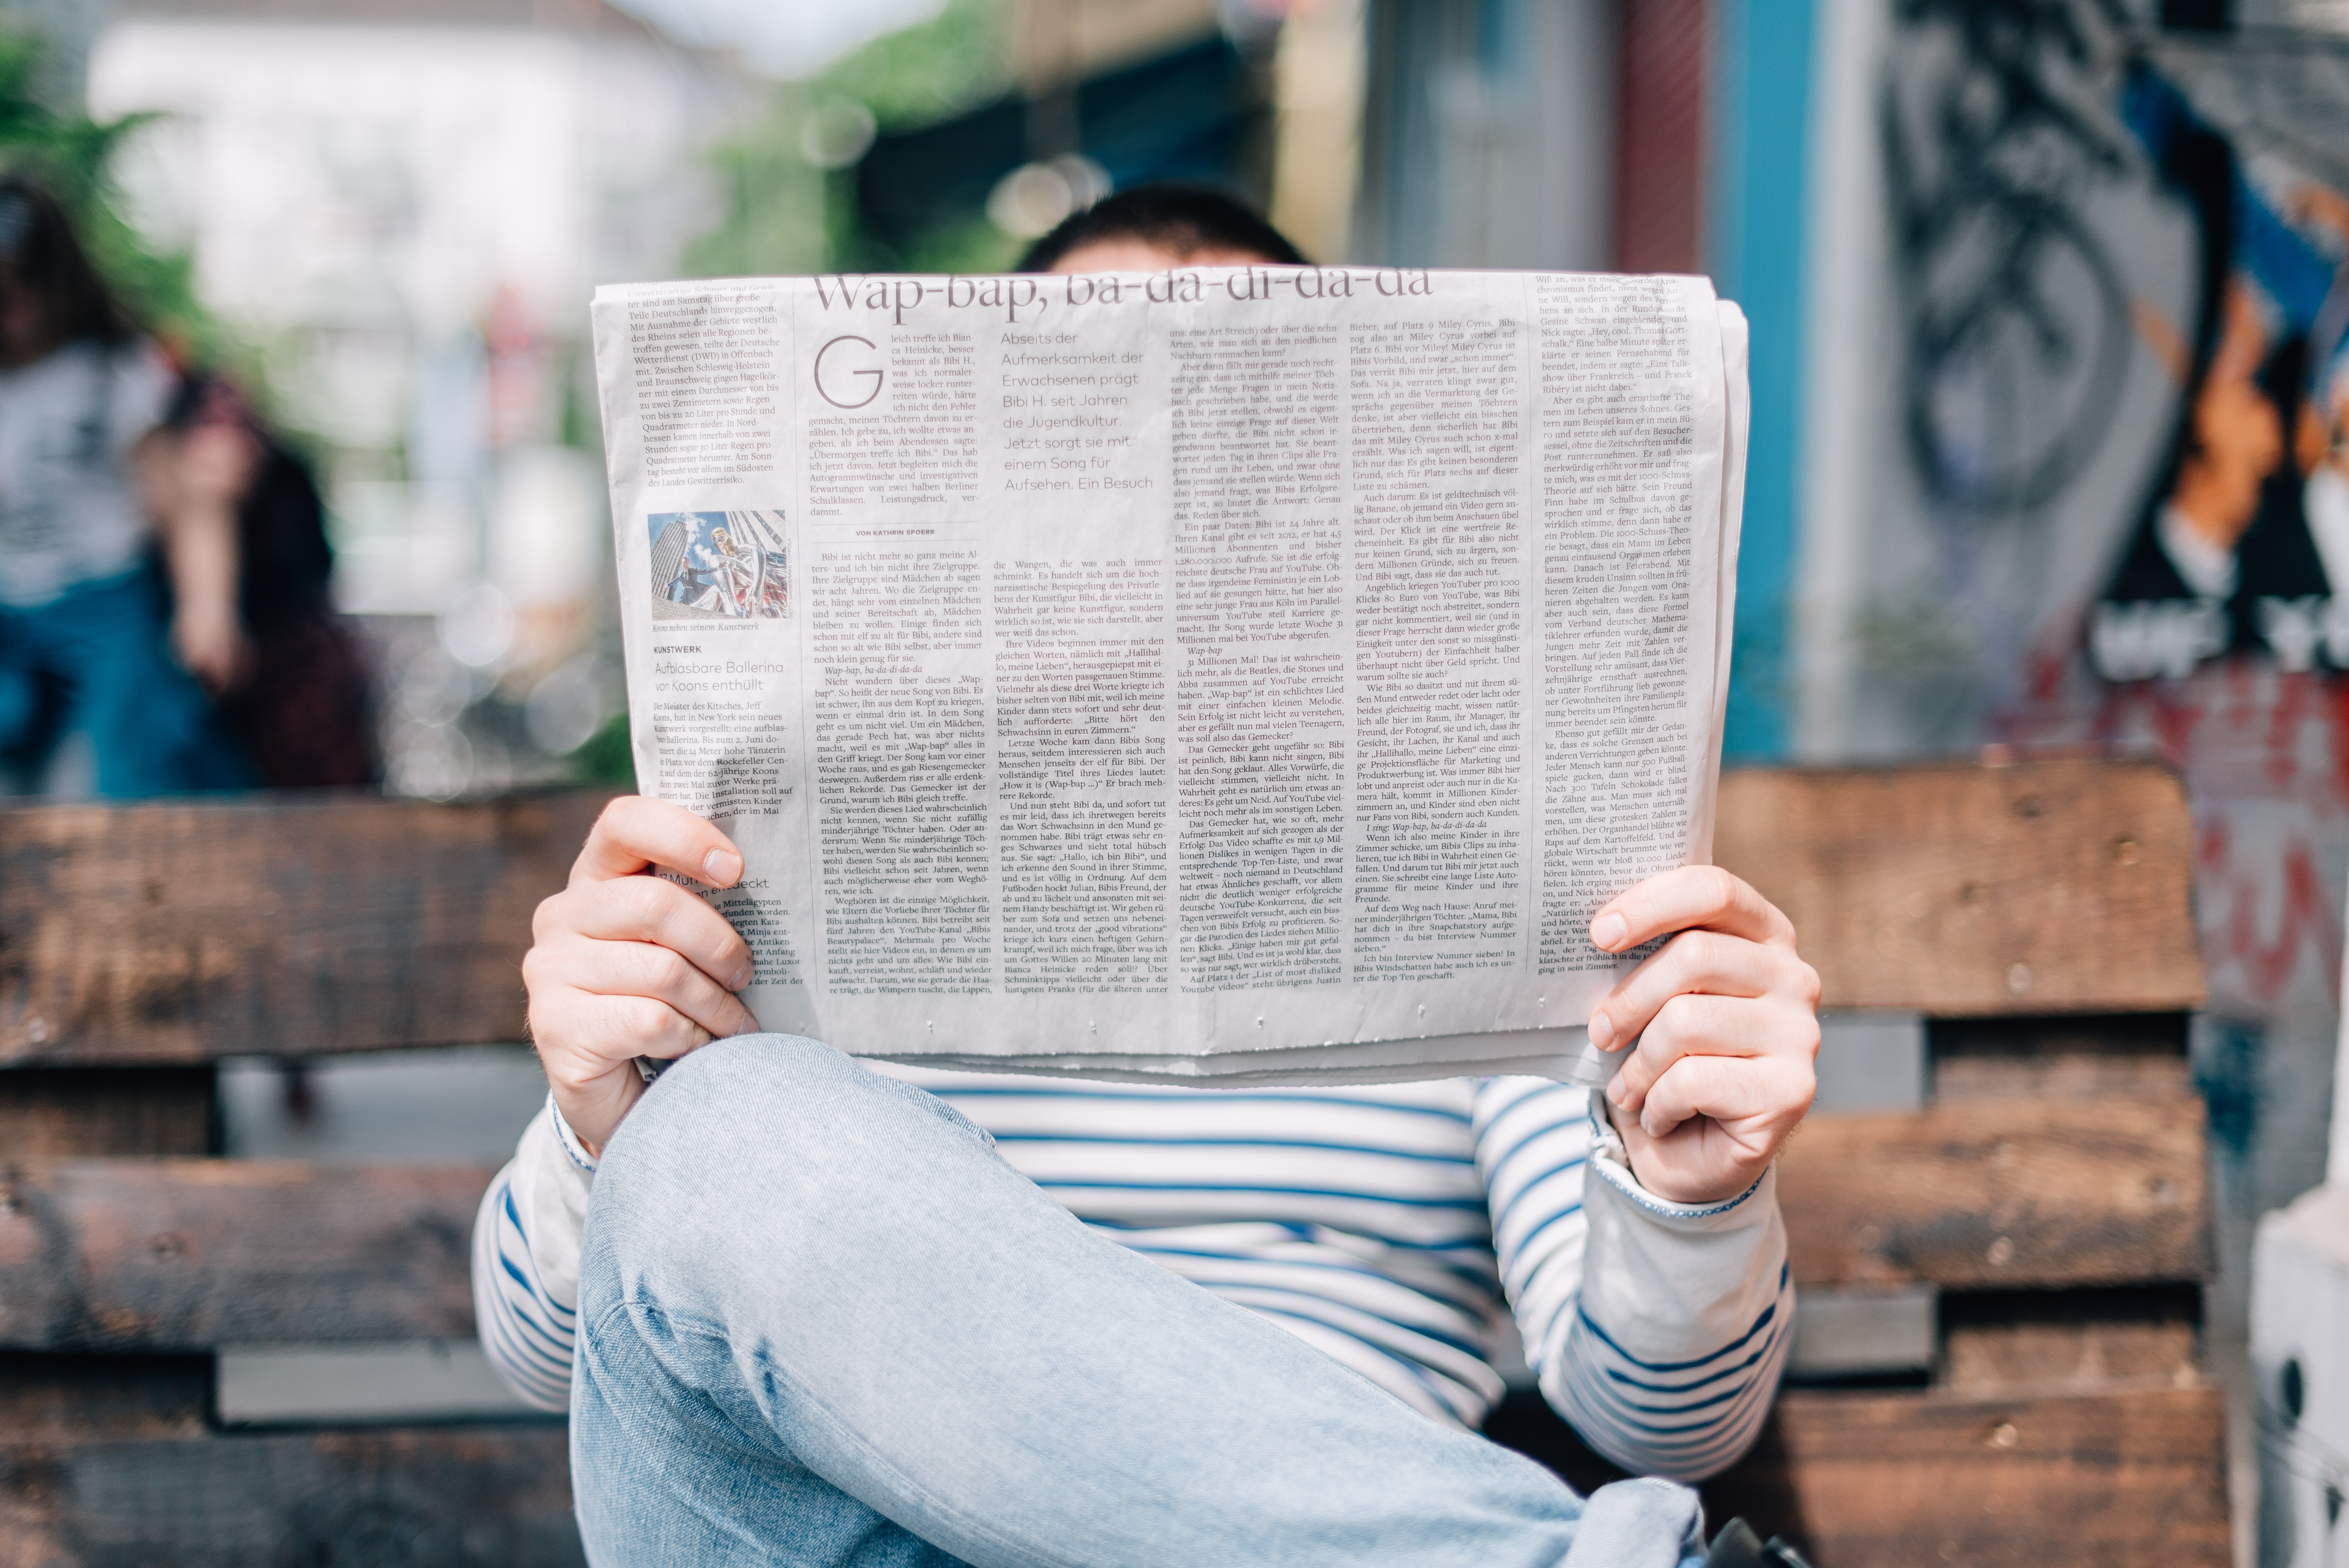 Photo of a man reading the newspaper by Roman Kraft on Unsplash